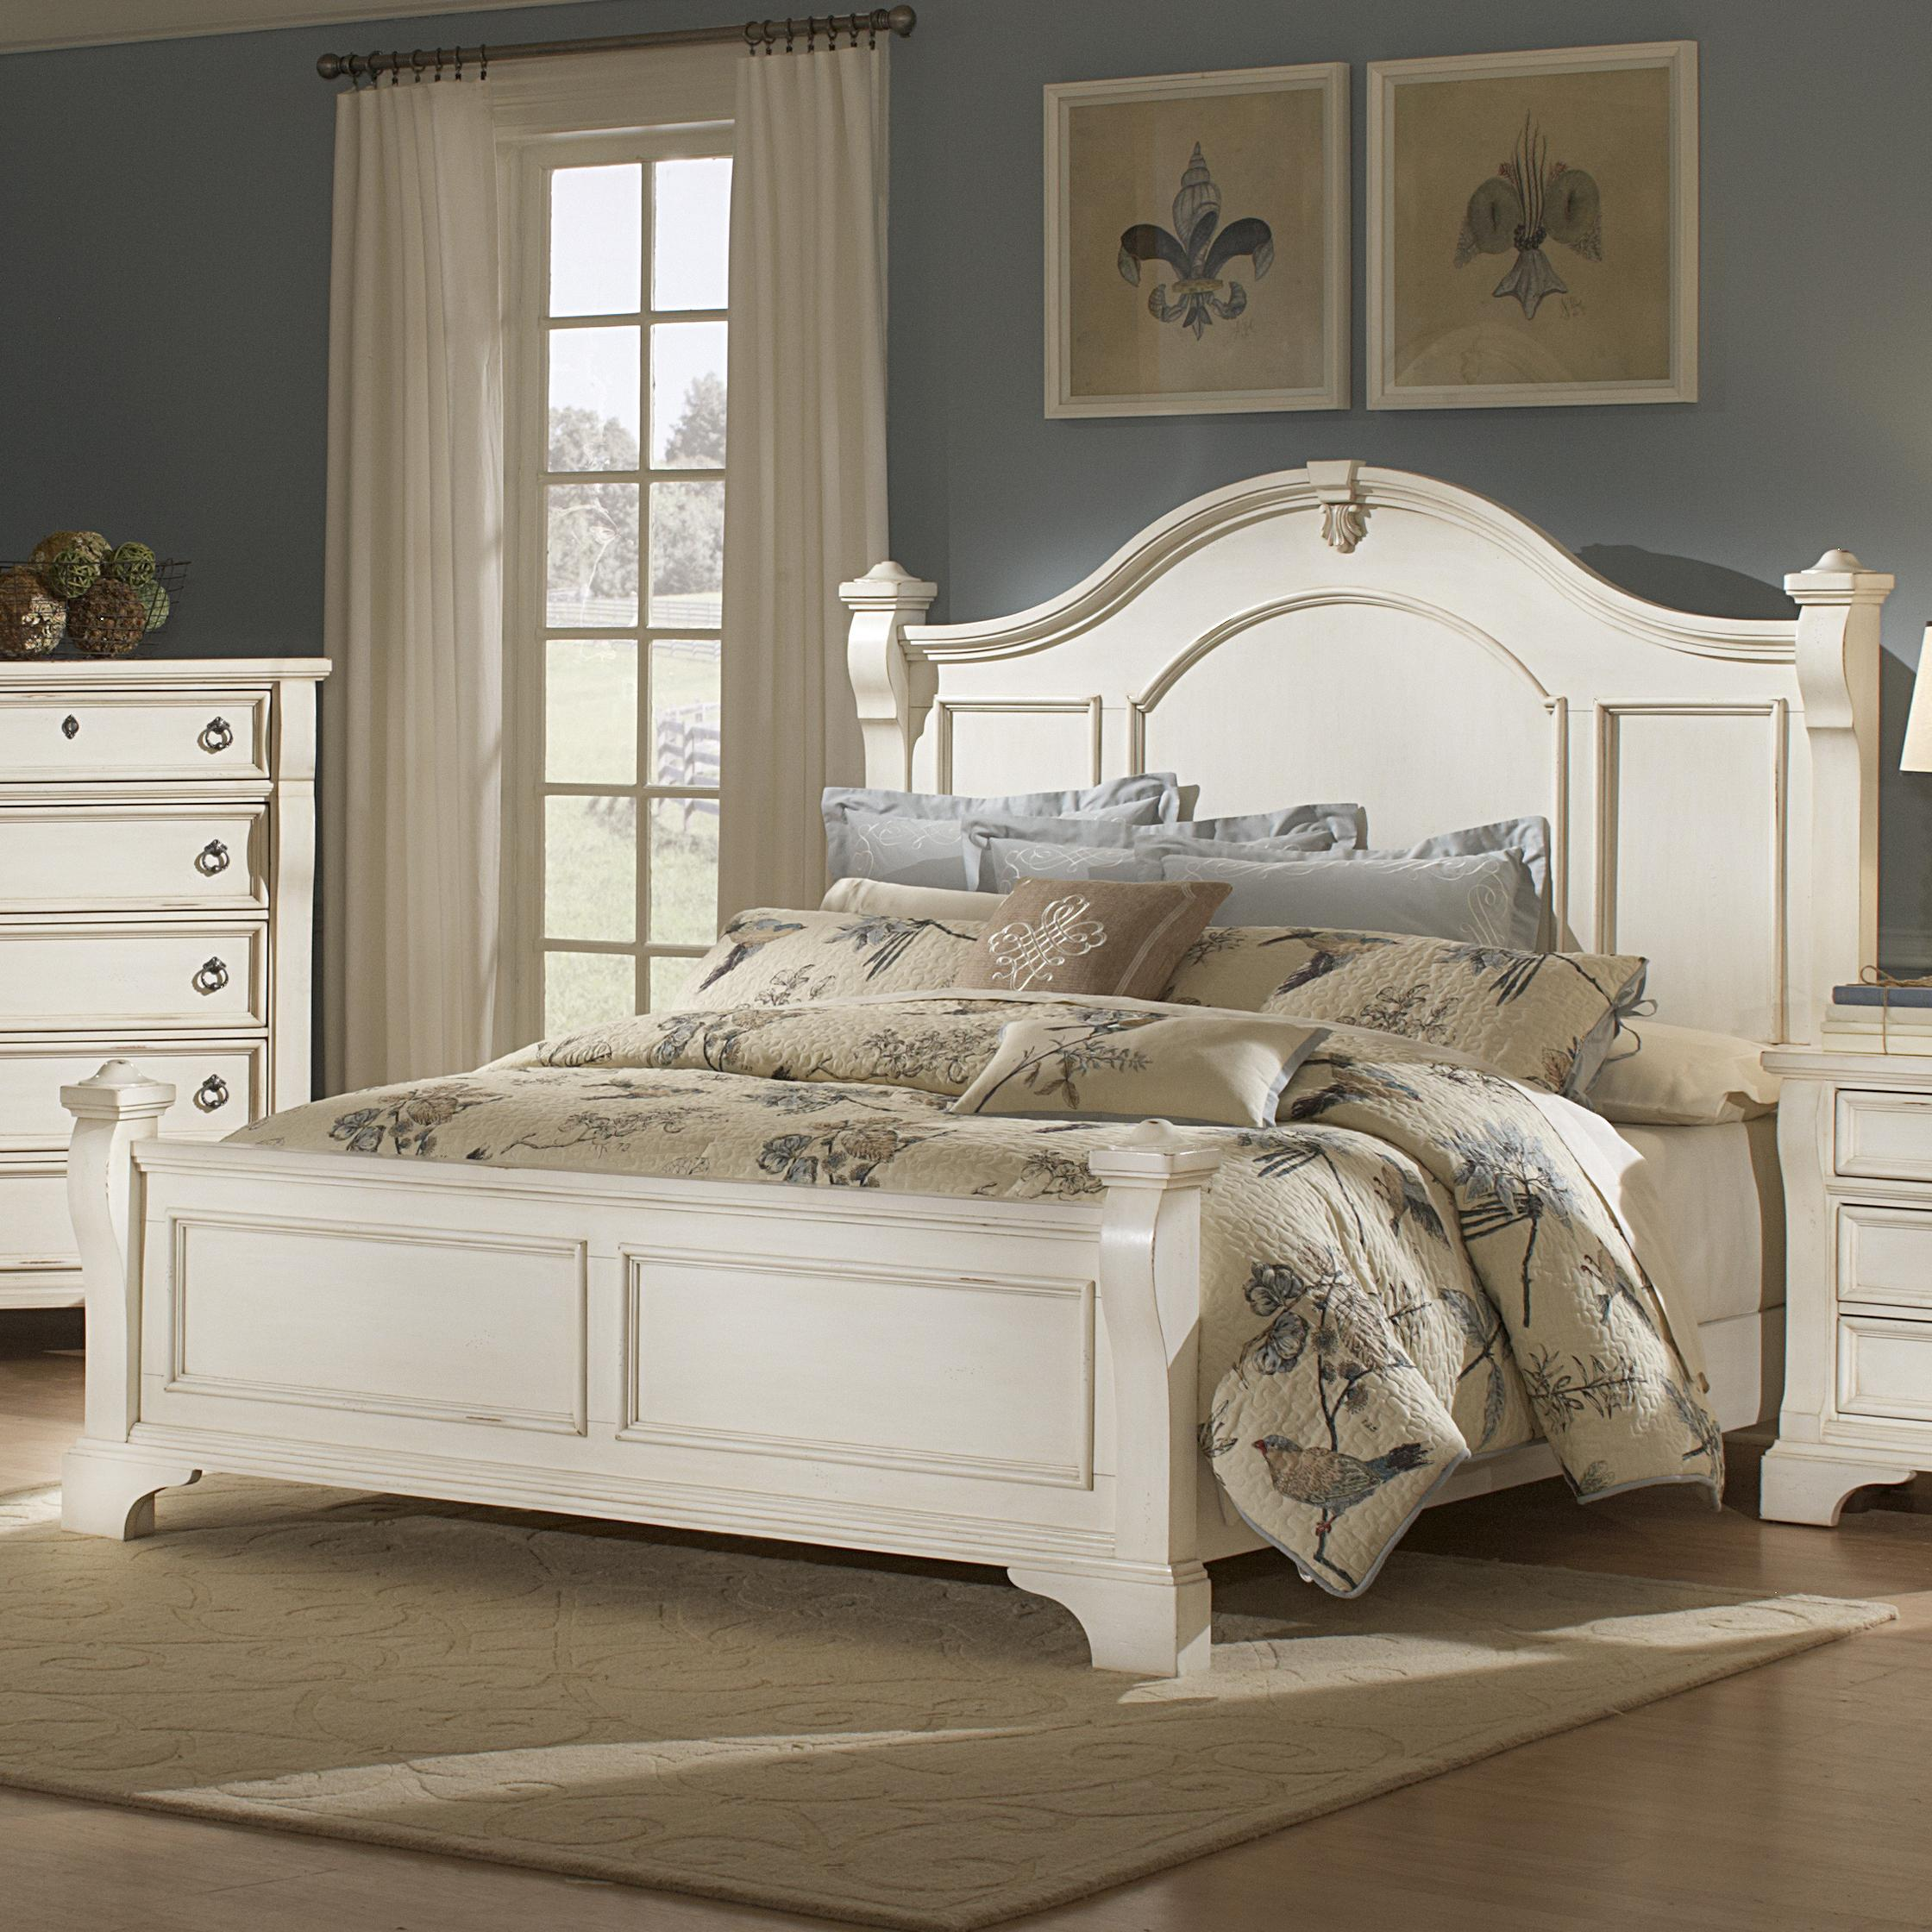 American Woodcrafters Heirloom Queen Poster Bed - Item Number: 2910-50POS